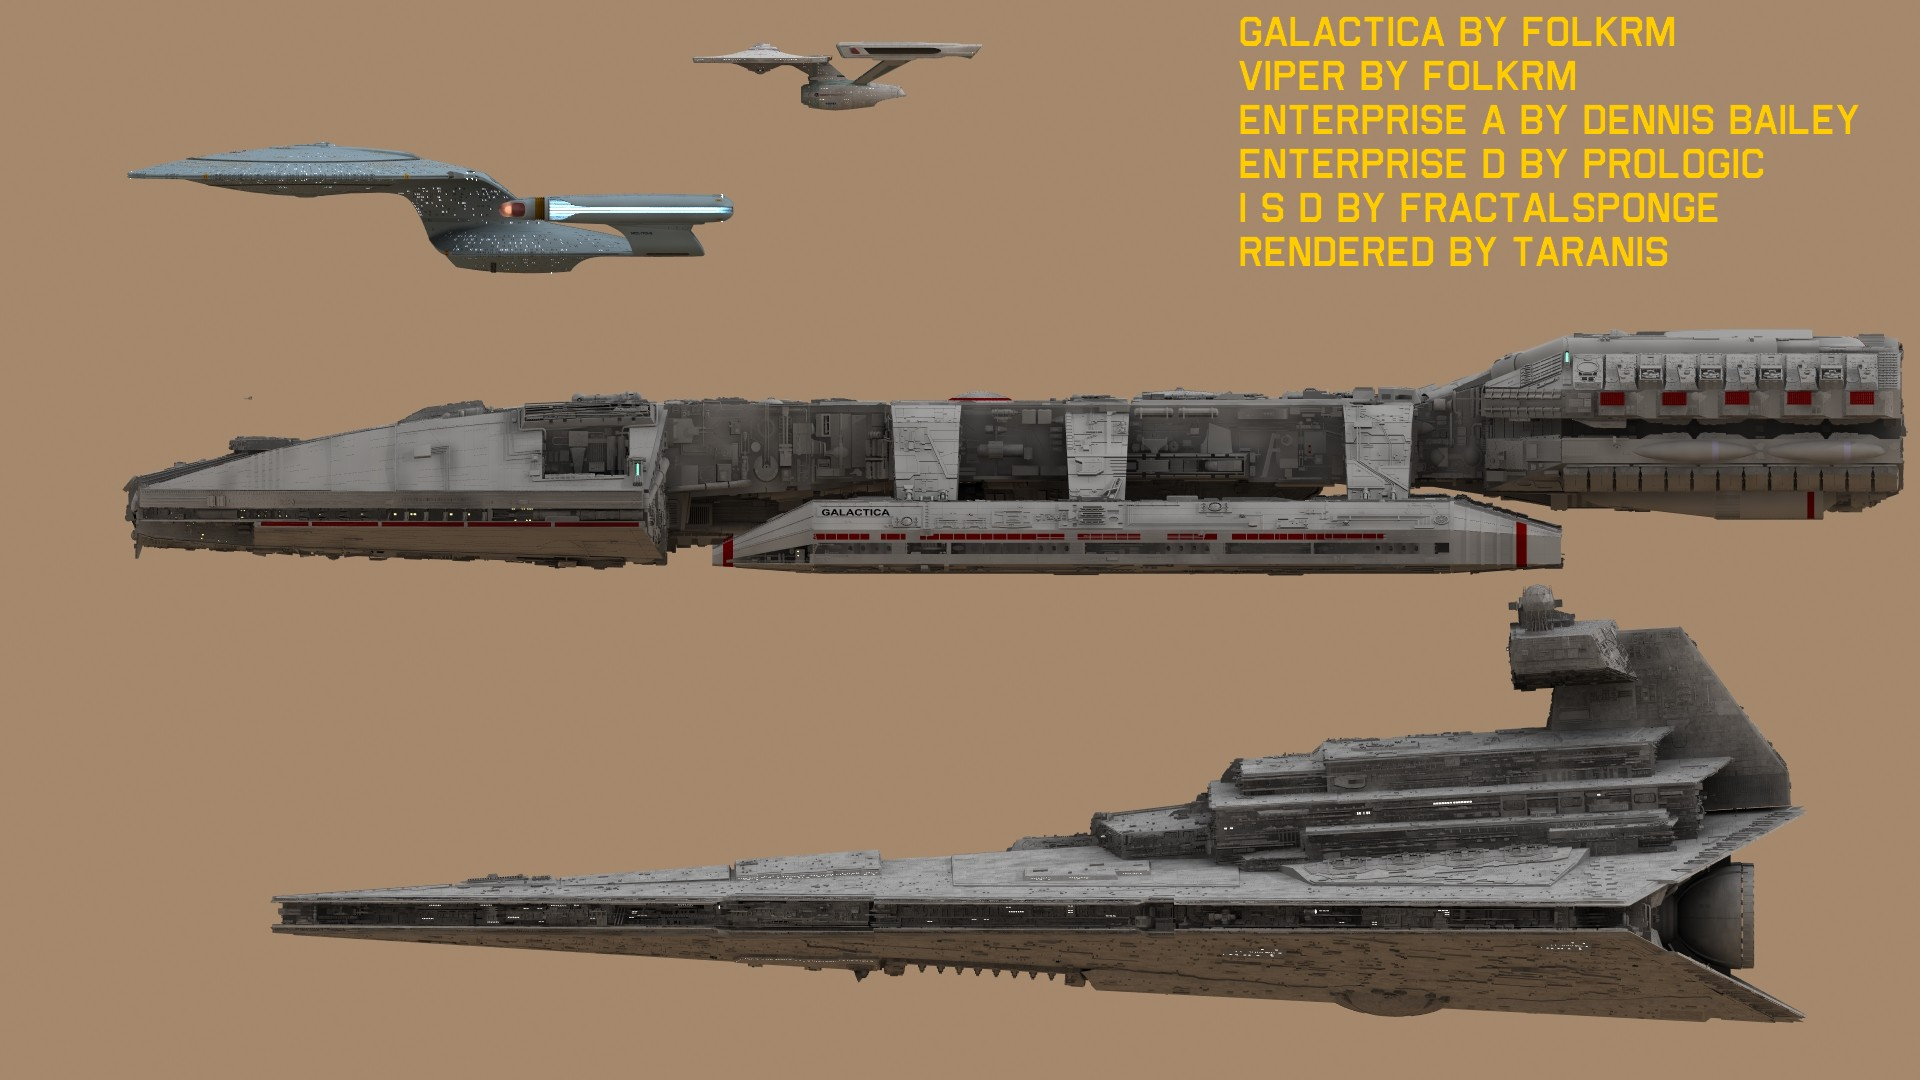 Star Ship Dimensions | GMD3D DESIGNS